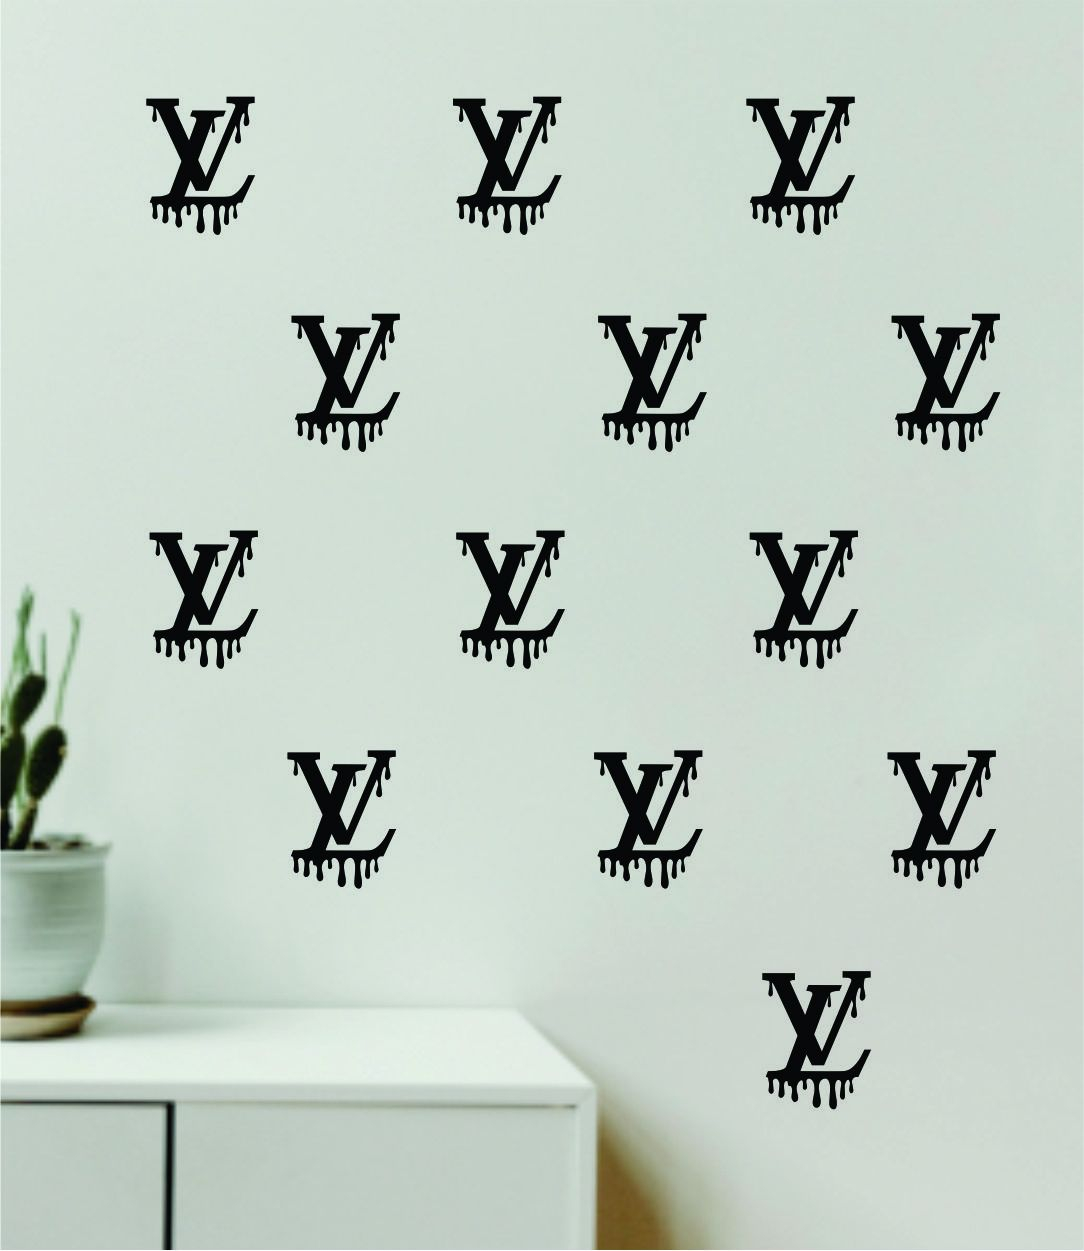 Image of Louis Vuitton Drip Logo Pattern Pack of 20 Wall Decal Home Decor Bedroom Room Vinyl Sticker Art Quote Designer Brand Luxury Girls Cute Expensive LV